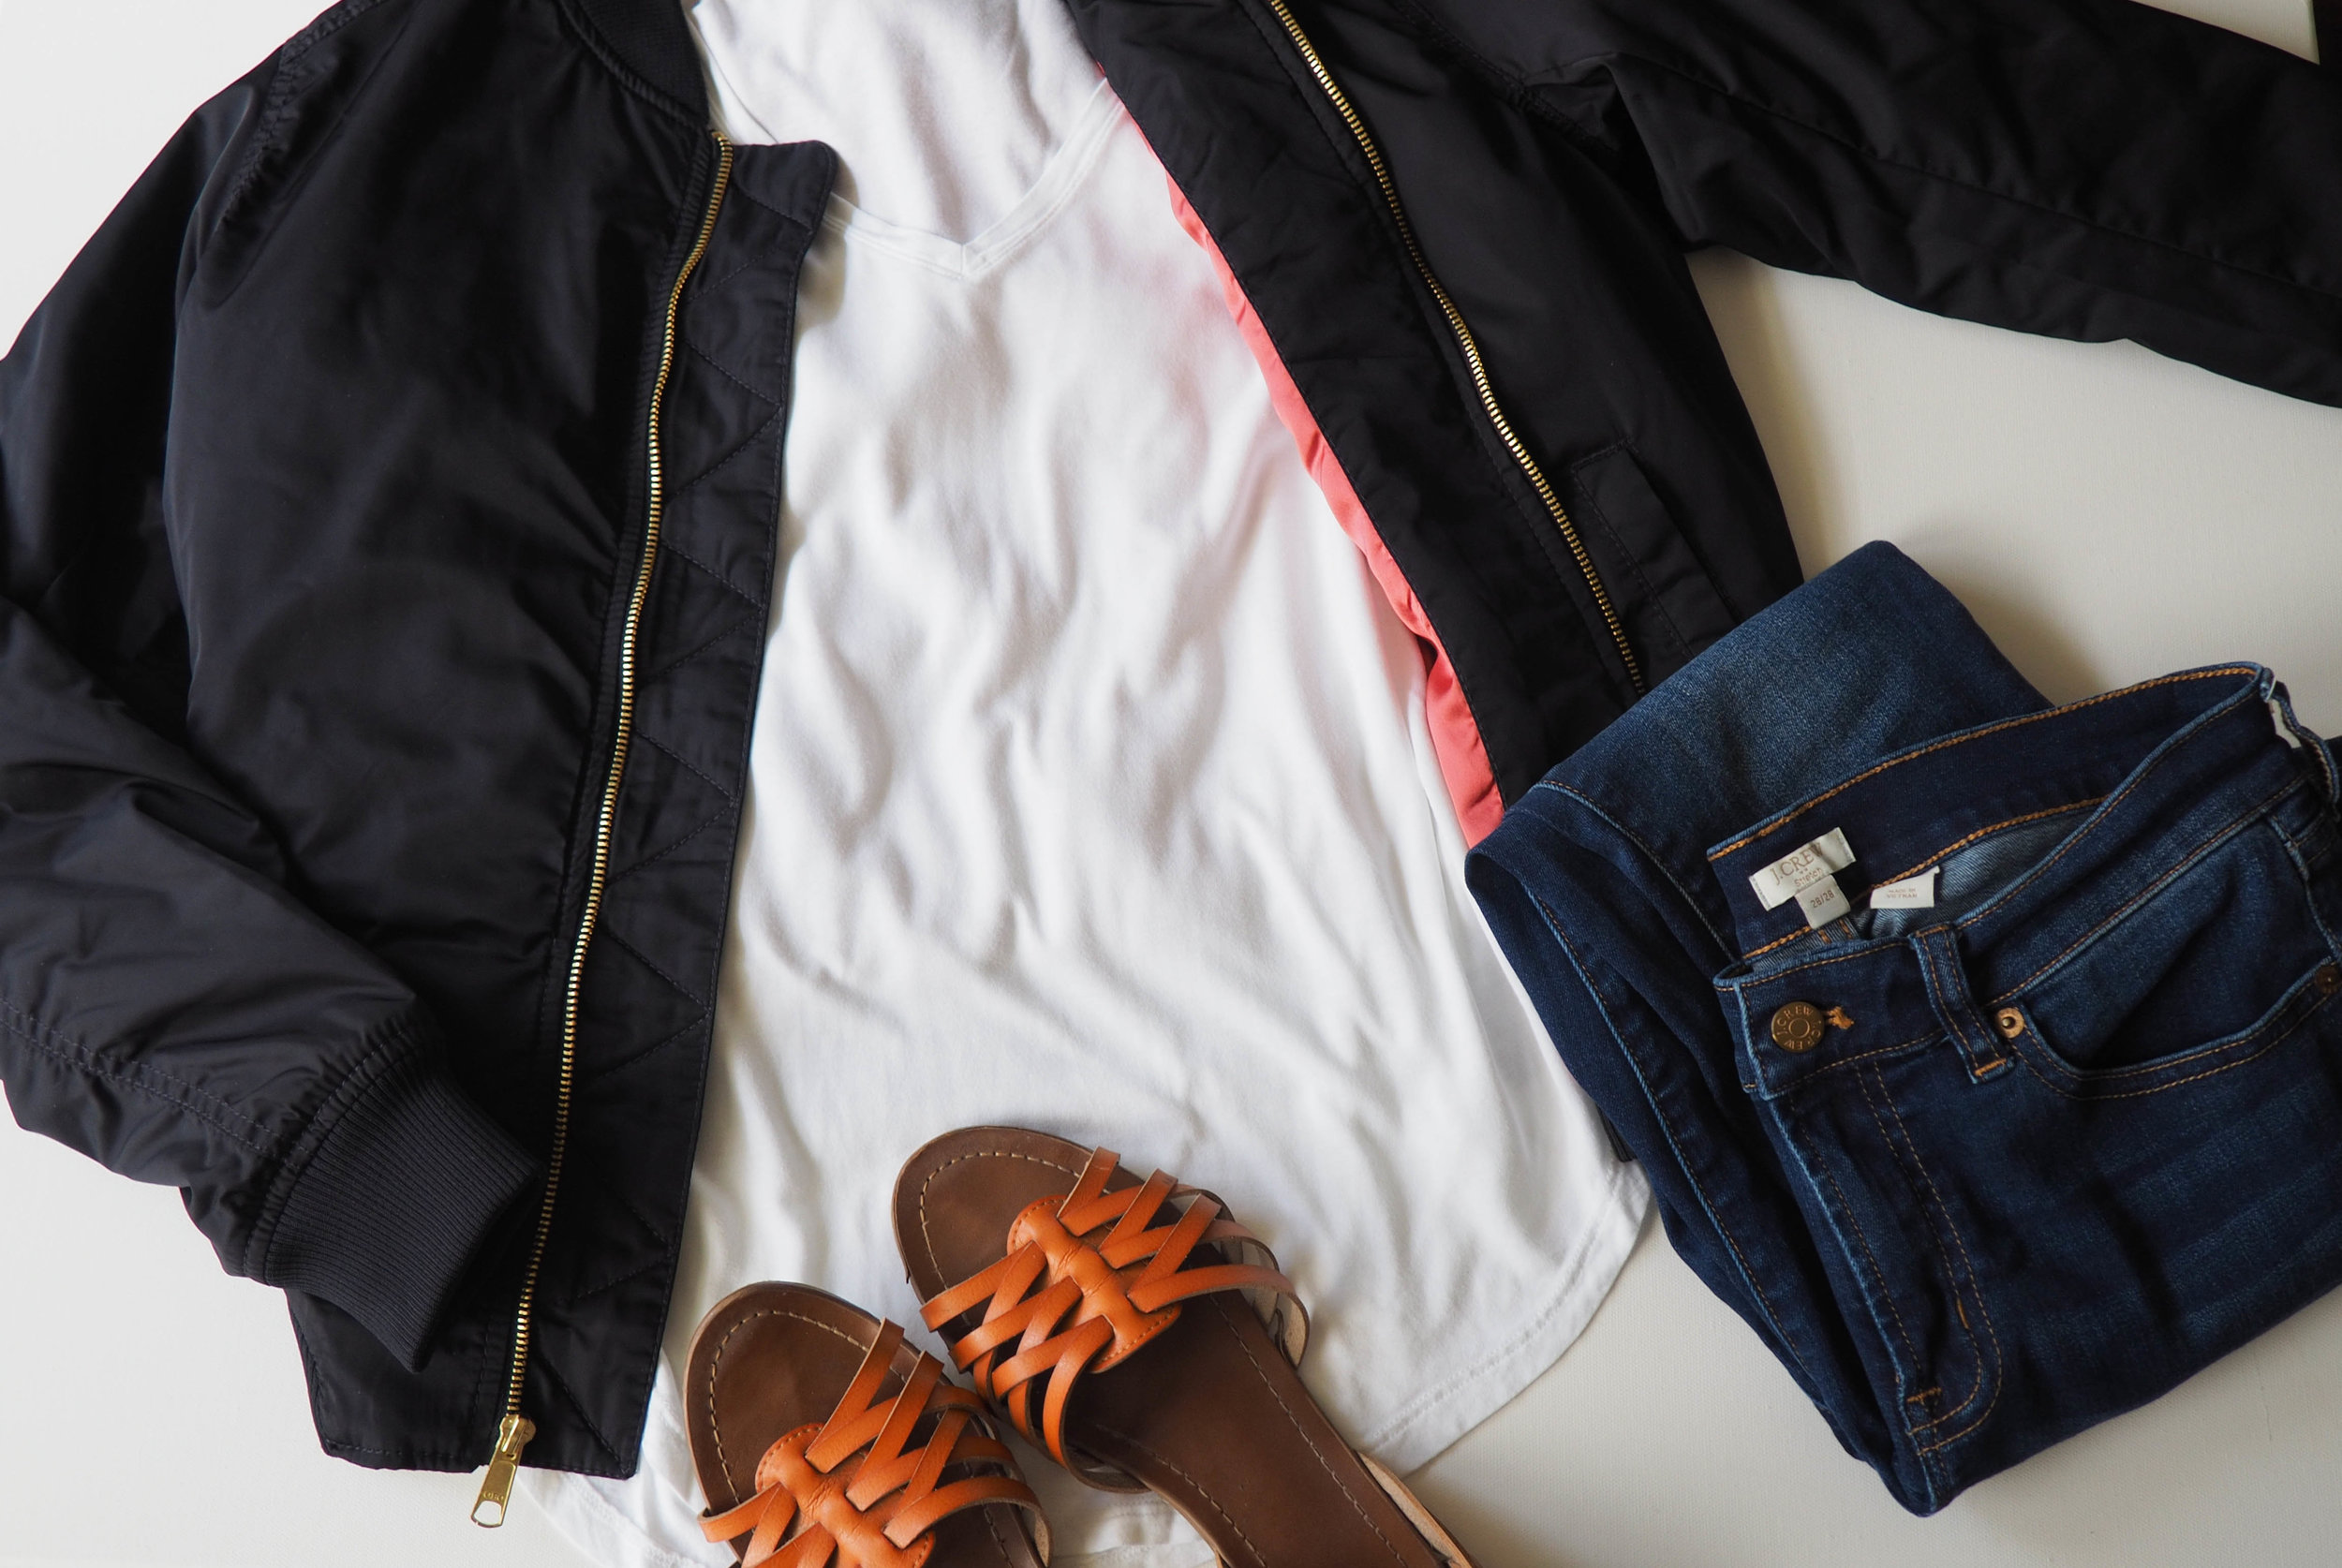 Bomber Jacket  |  White T-shirt  |  J. Crew Jeans  |  Gena Sandals